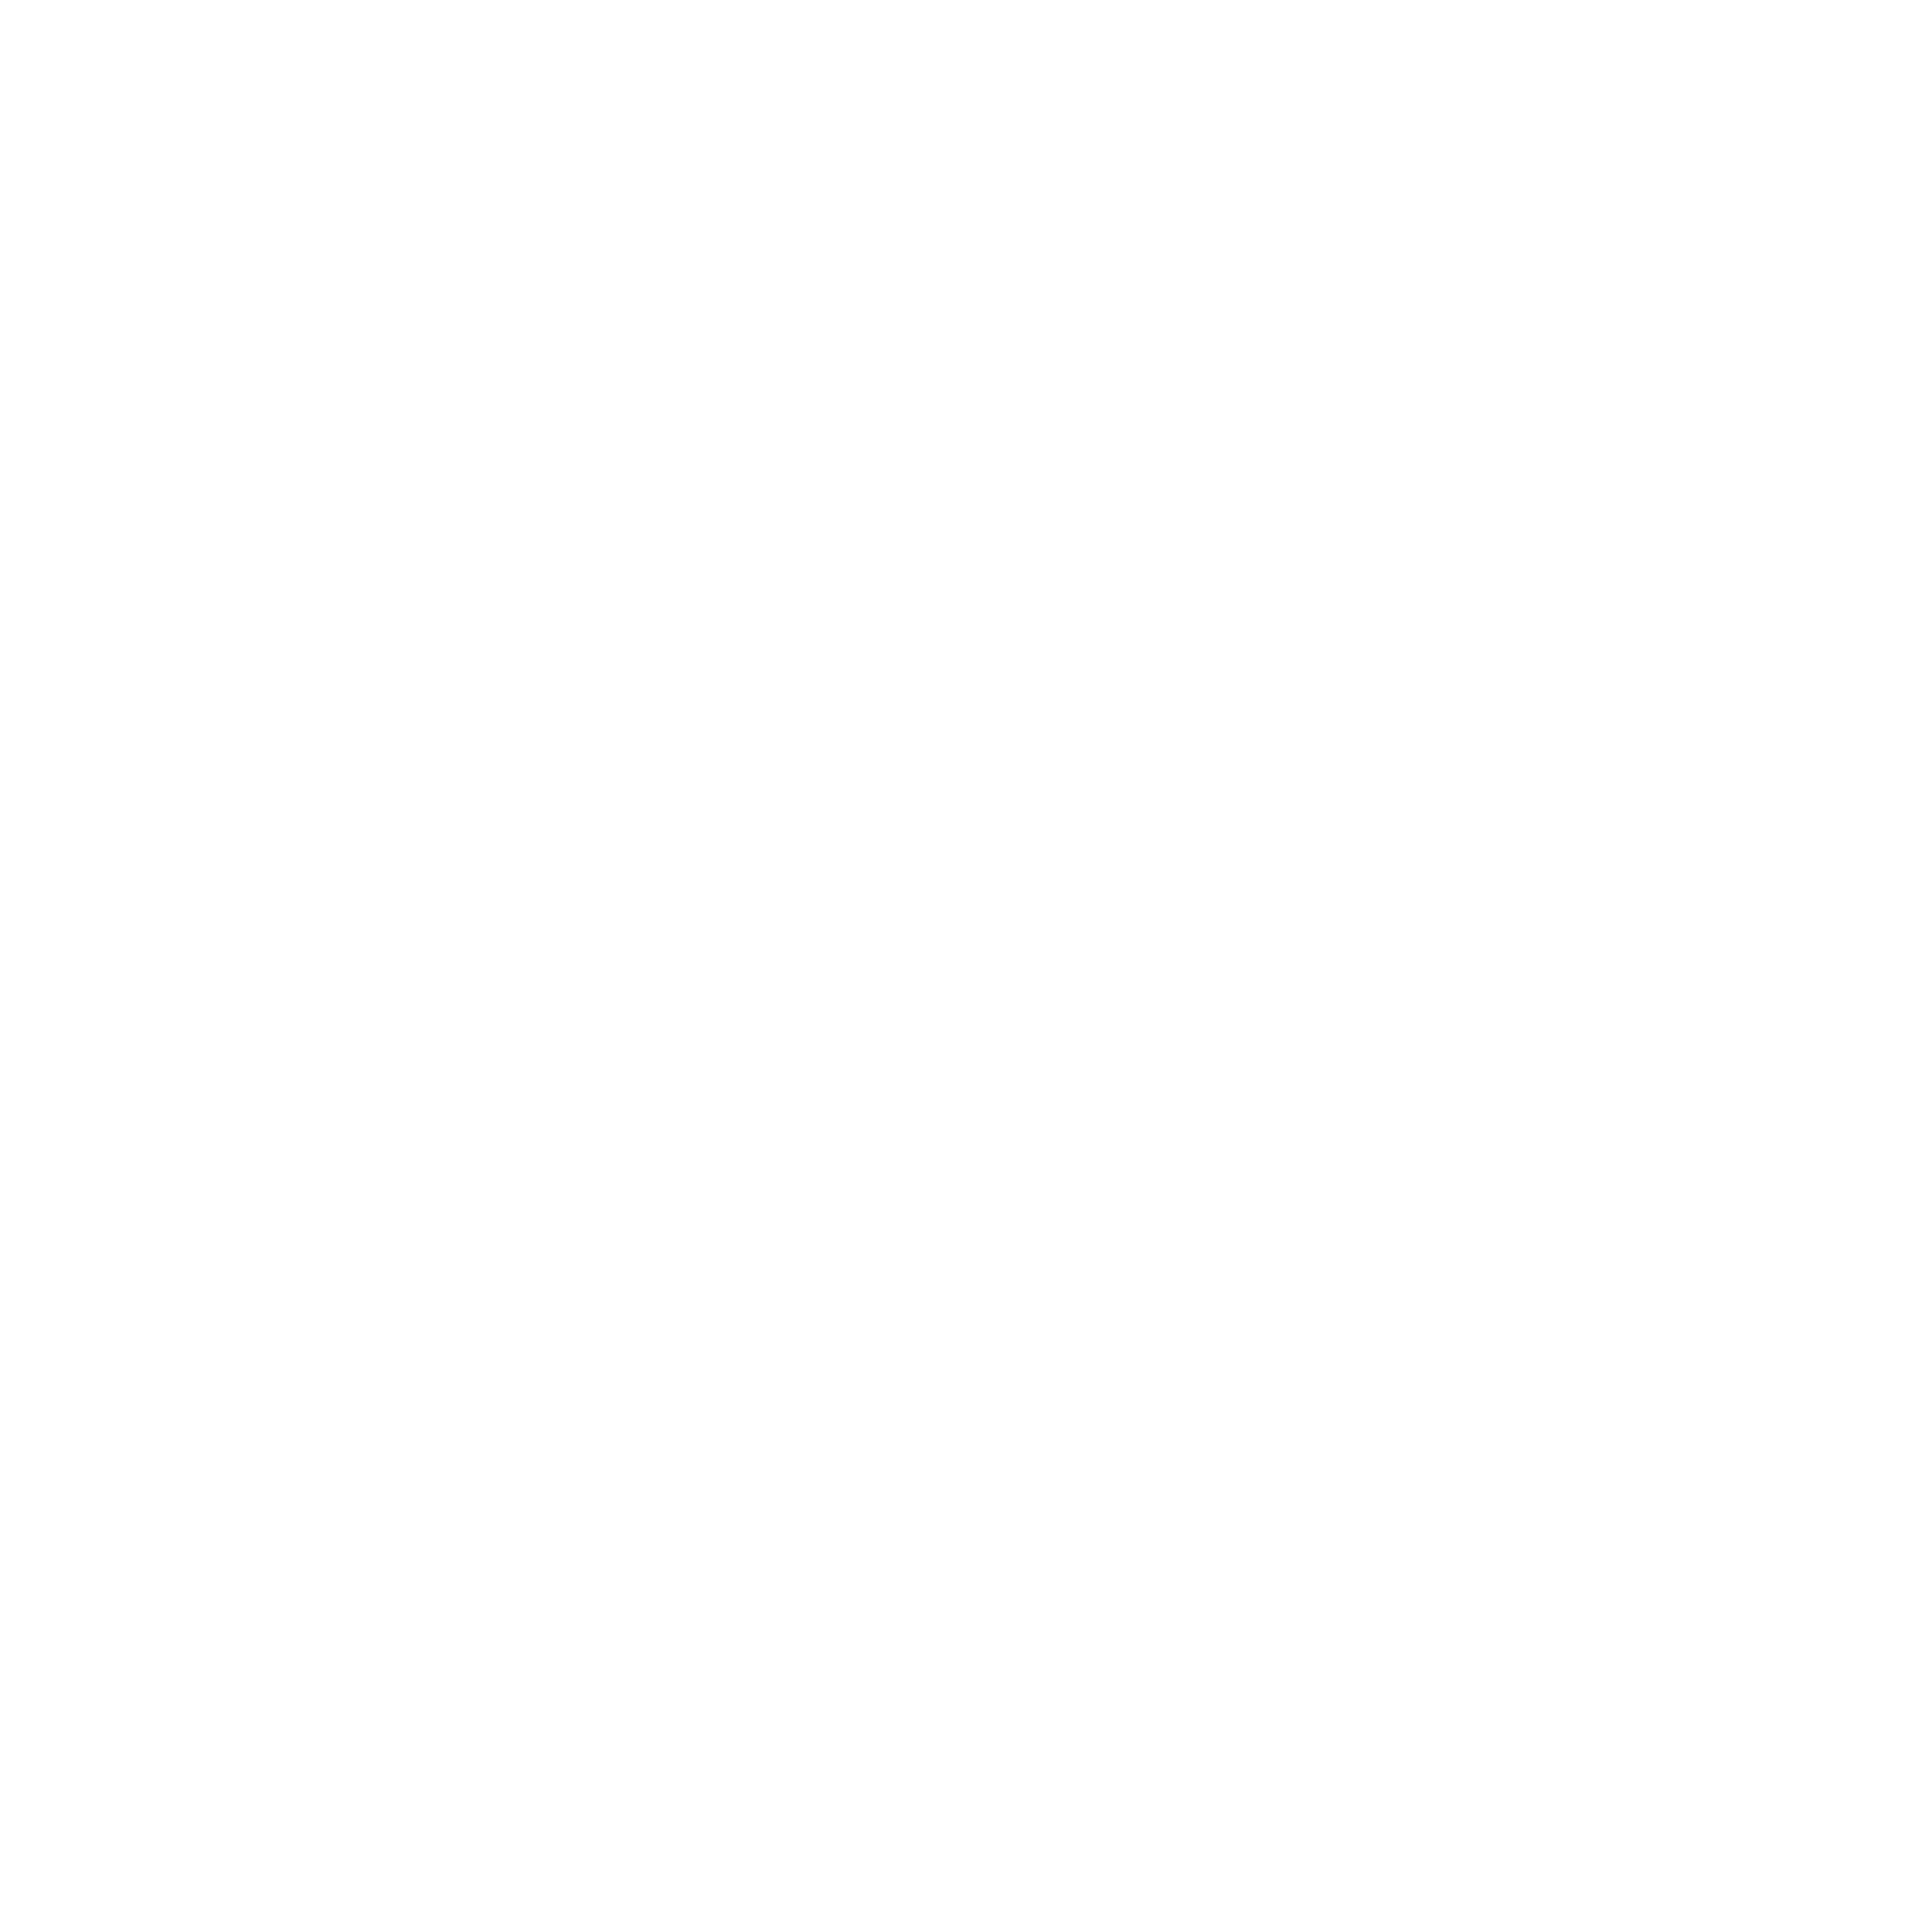 7196 ge monogram primary white RGB